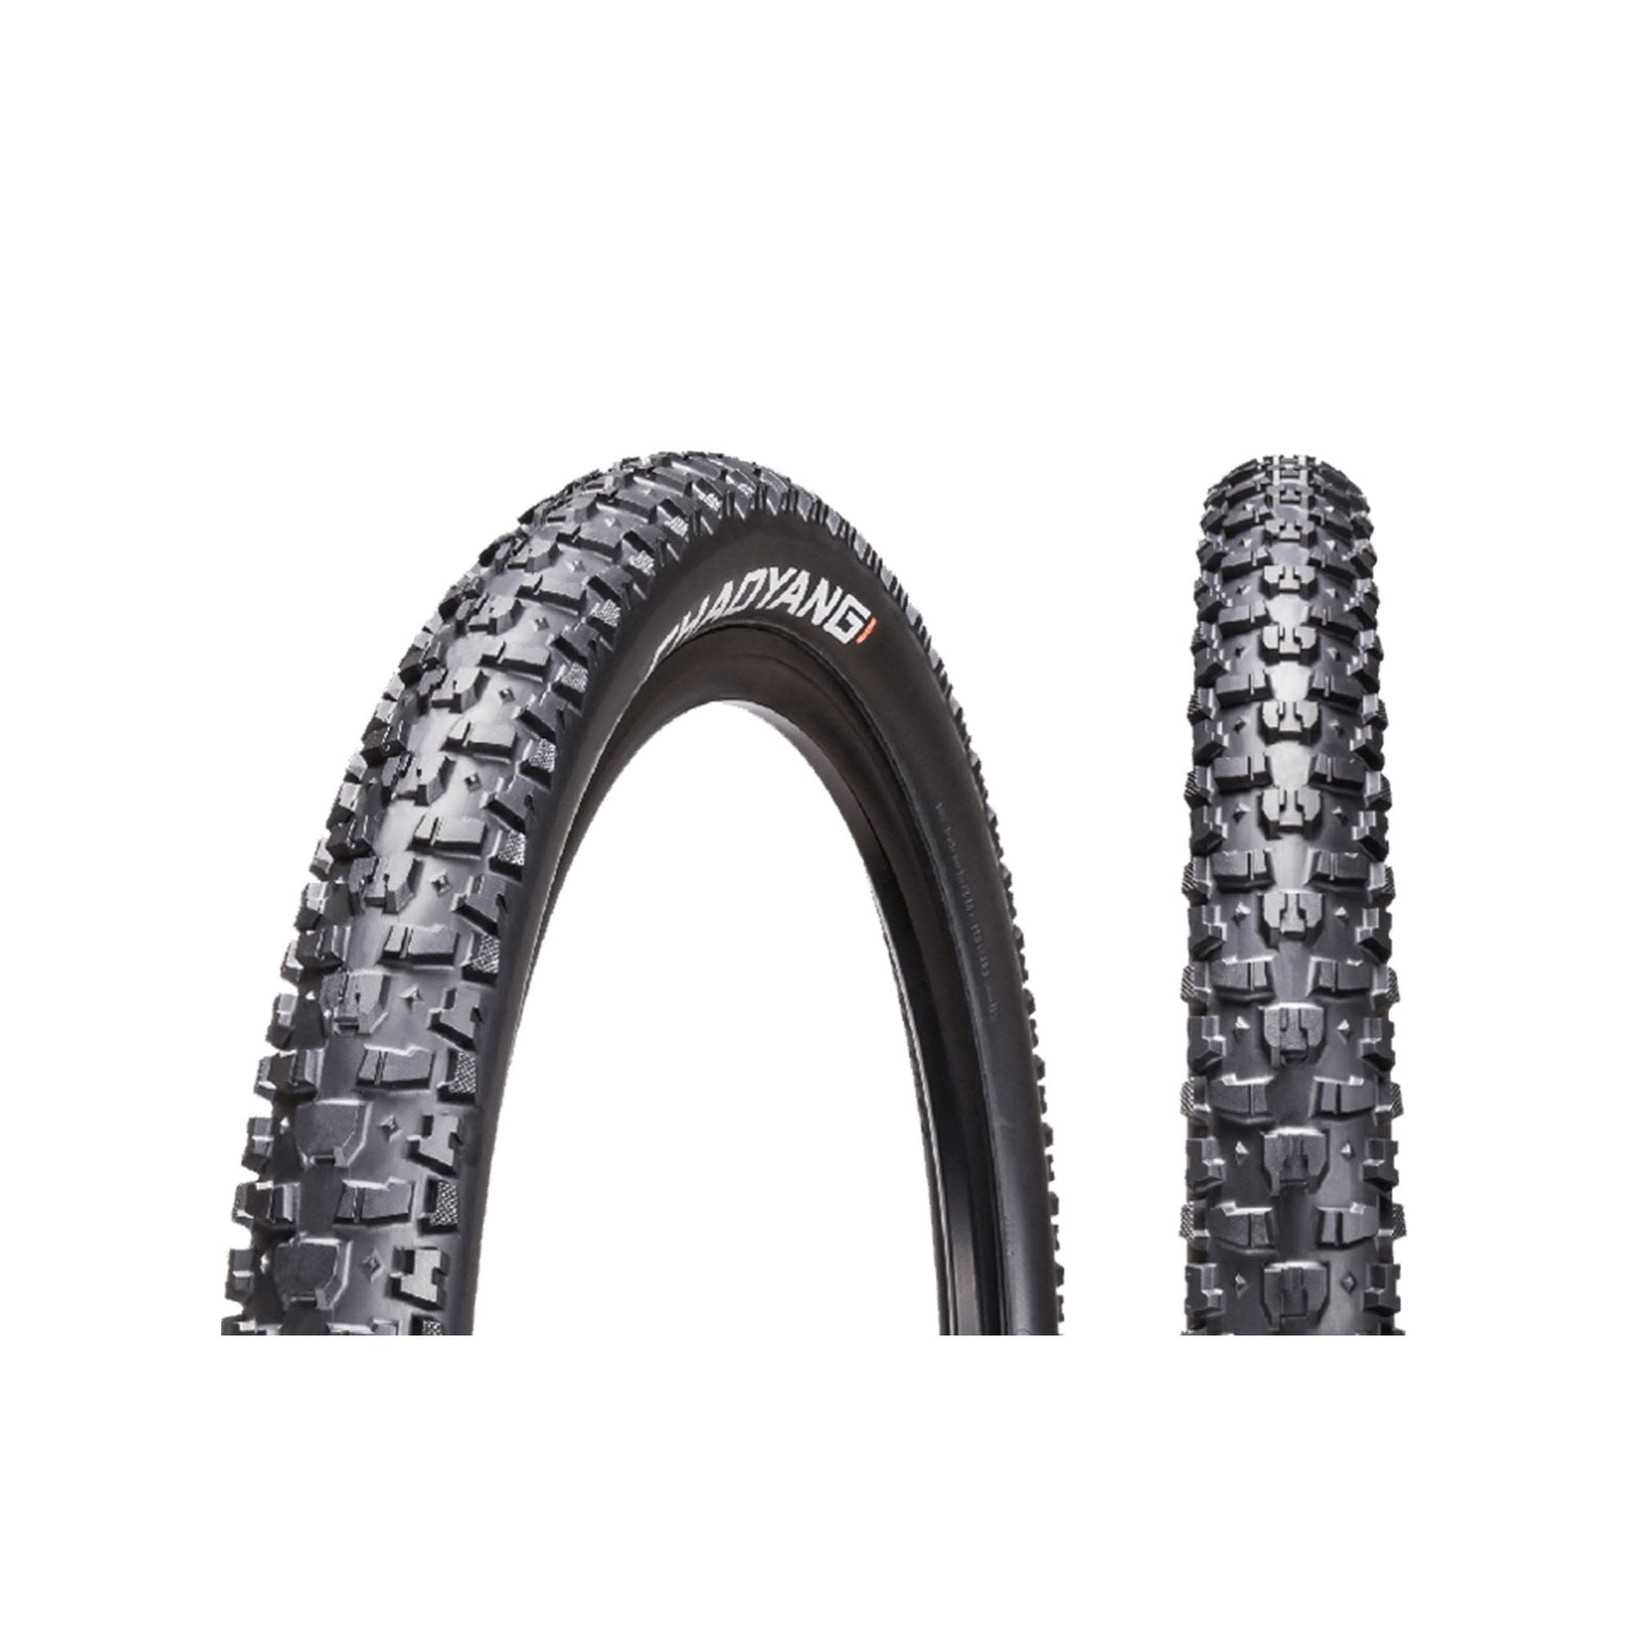 Chaoyang Rampage 29 x 2.25 Tyre